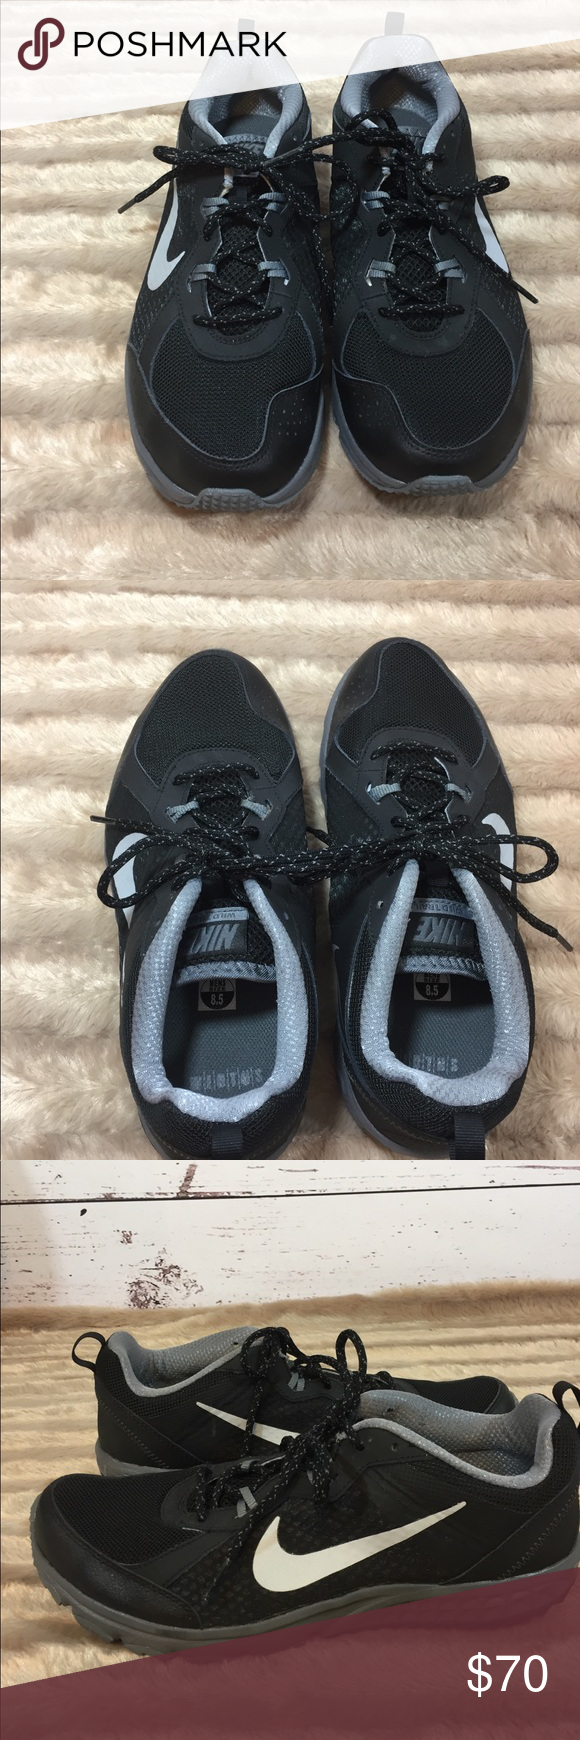 f32c4a22a76 Nike Men s Wild Trail Running Shoe Size 8.5 Nike Men s Wild Trail Running  Shoe Size 8.5 Black and Gray Light weight These shoes run small.